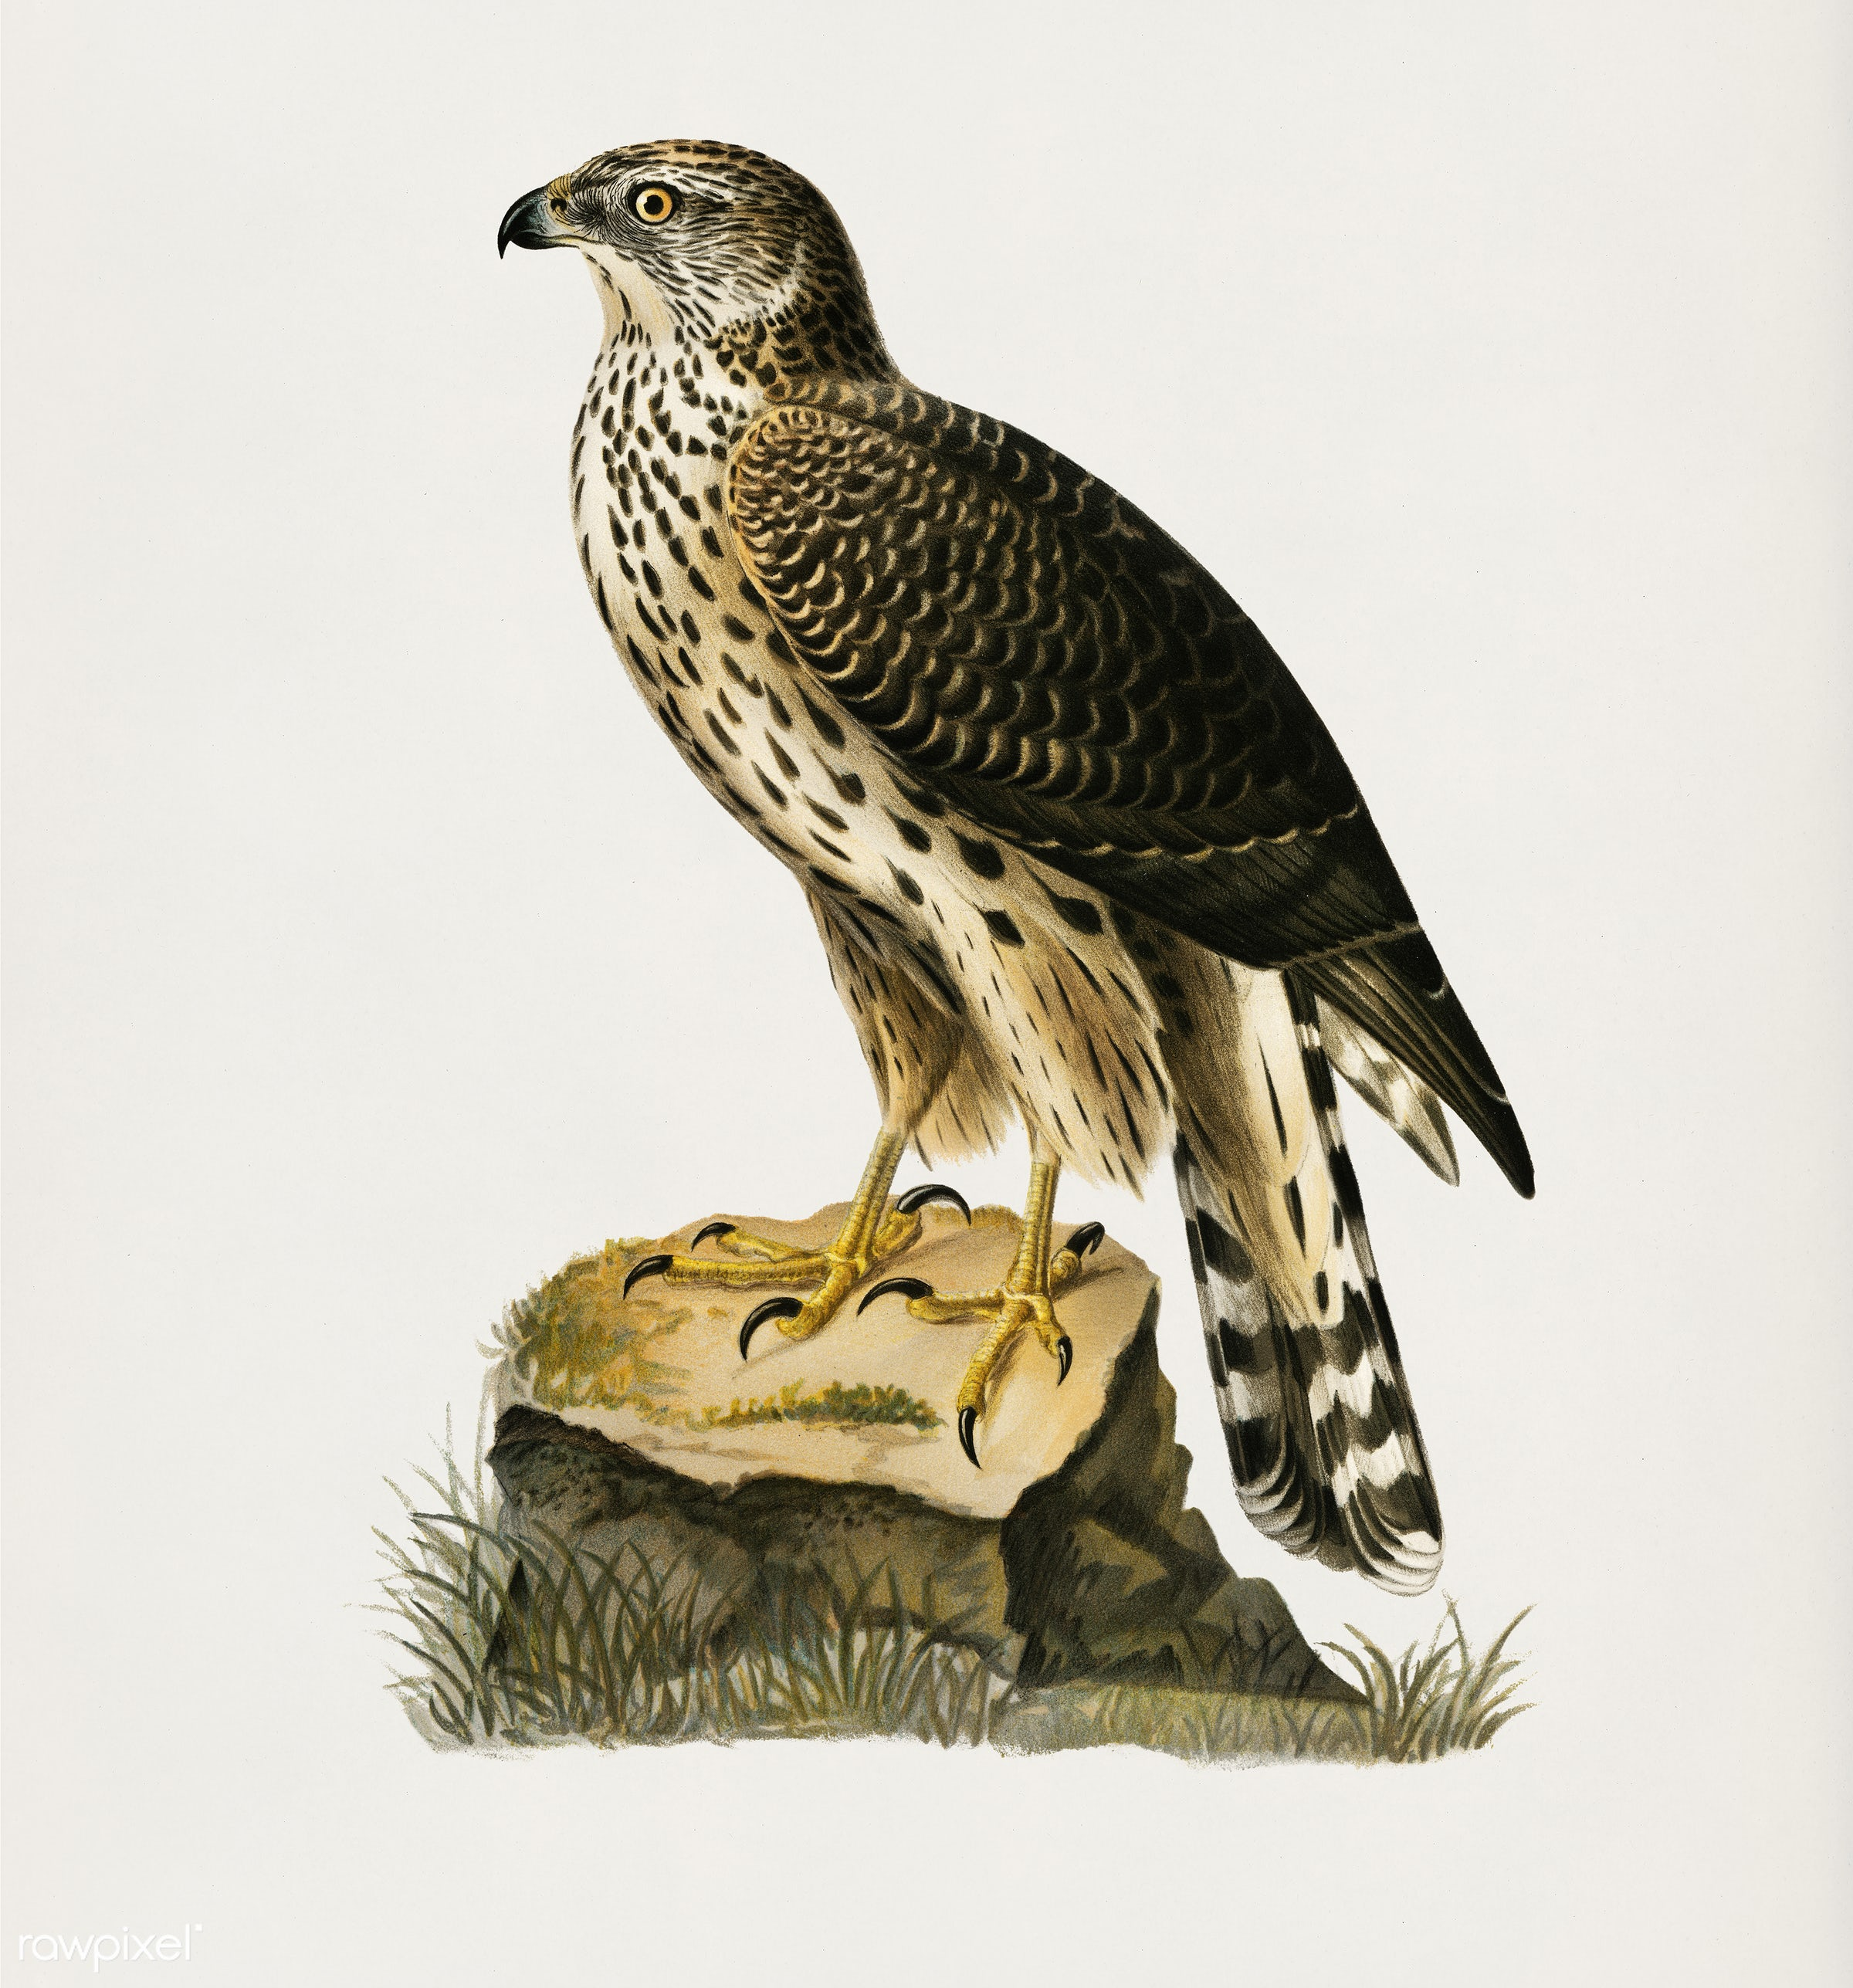 Goshawk (Accipiter gentilis) illustrated by the von Wright brothers. Digitally enhanced from our own 1929 folio version of...